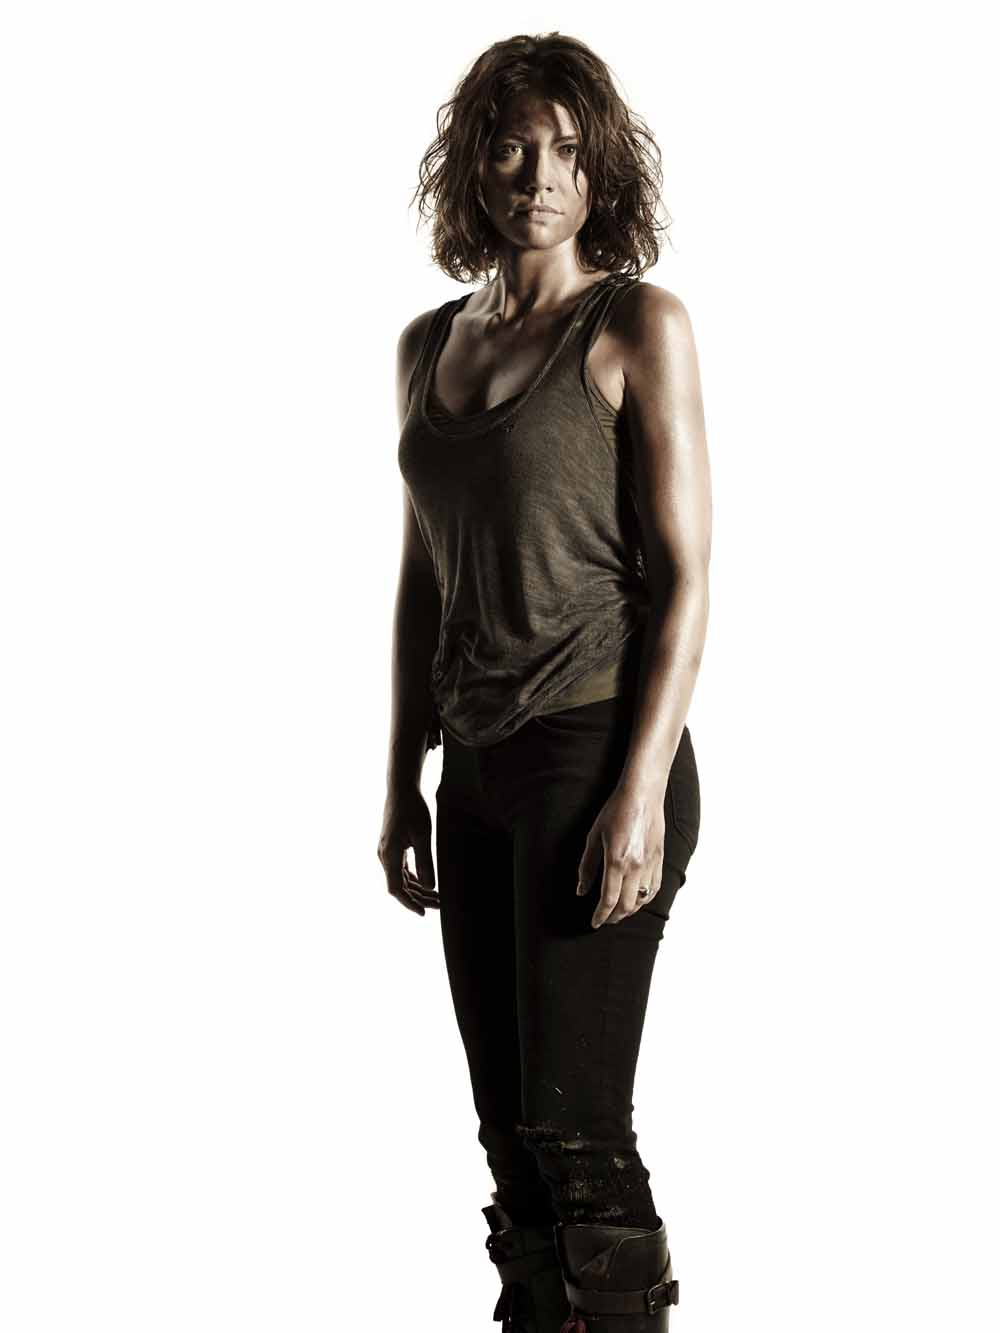 The Walking Dead Has Changed My Temperament, Says Lauren Cohan